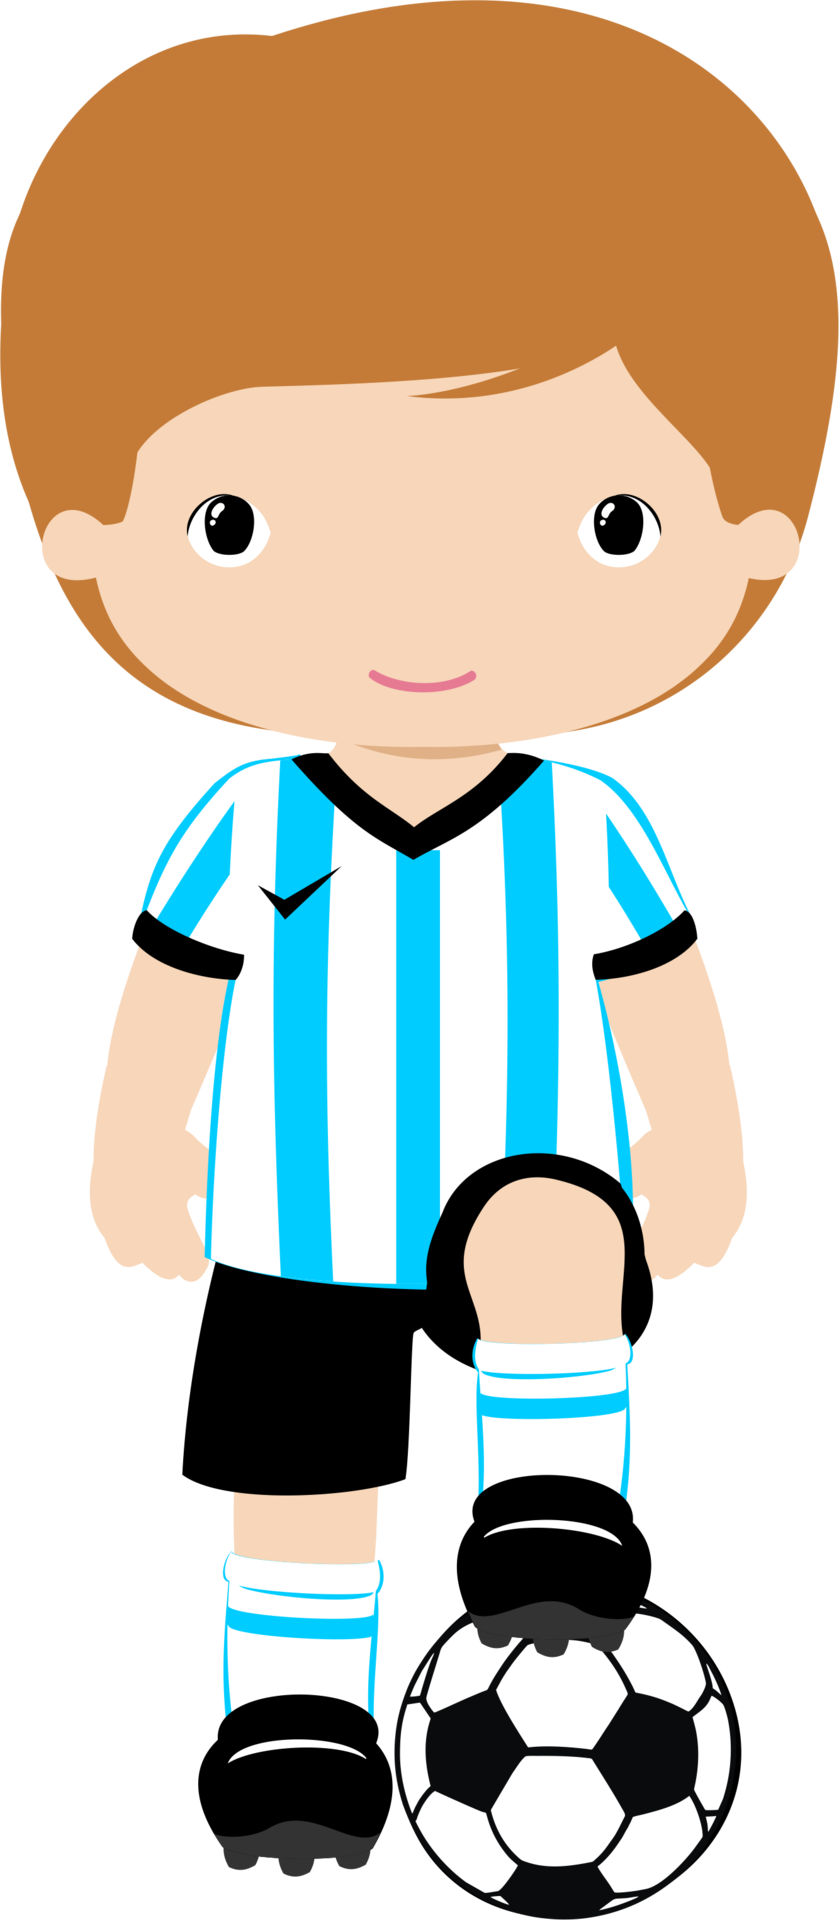 shared ver todas. Clipart football scrapbook